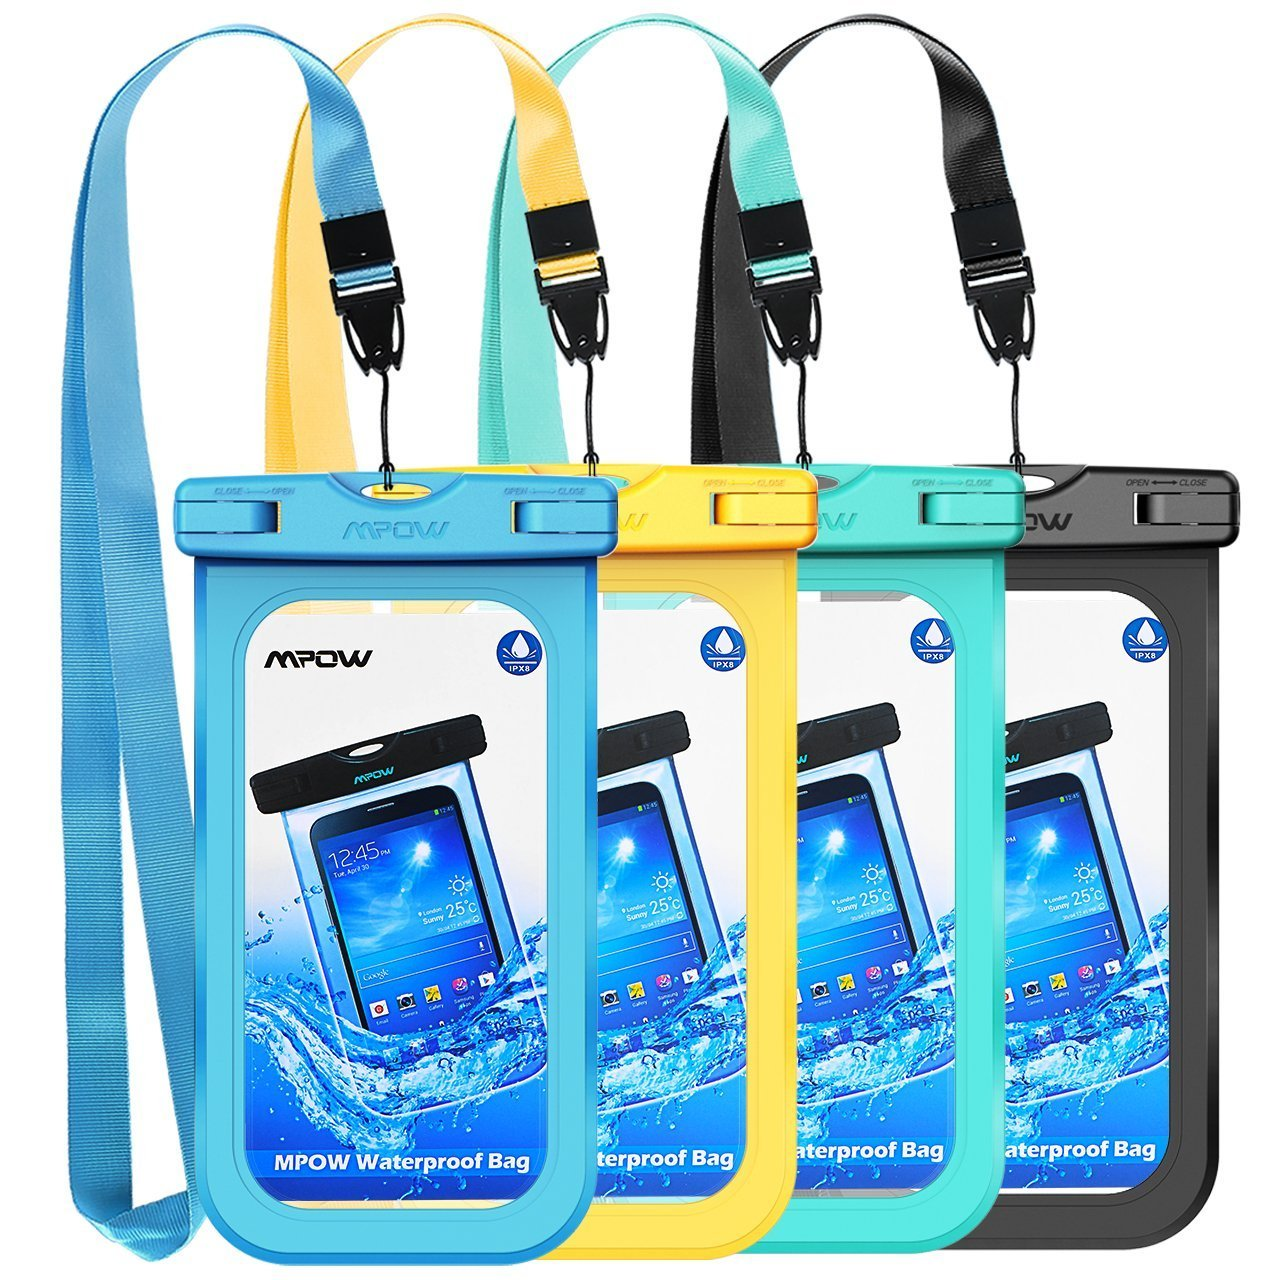 Mpow Waterproof Phone Pouch, IPX8 Universal Waterproof Case Underwater Dry Bag 4-Pack Compatible for iPhone Xs Max/XS/XR/X/8, Galaxy S9/S9P/S8/Note 9/8, Google/HTC up to 6.5''(Blue Yellow Green Black) by Mpow